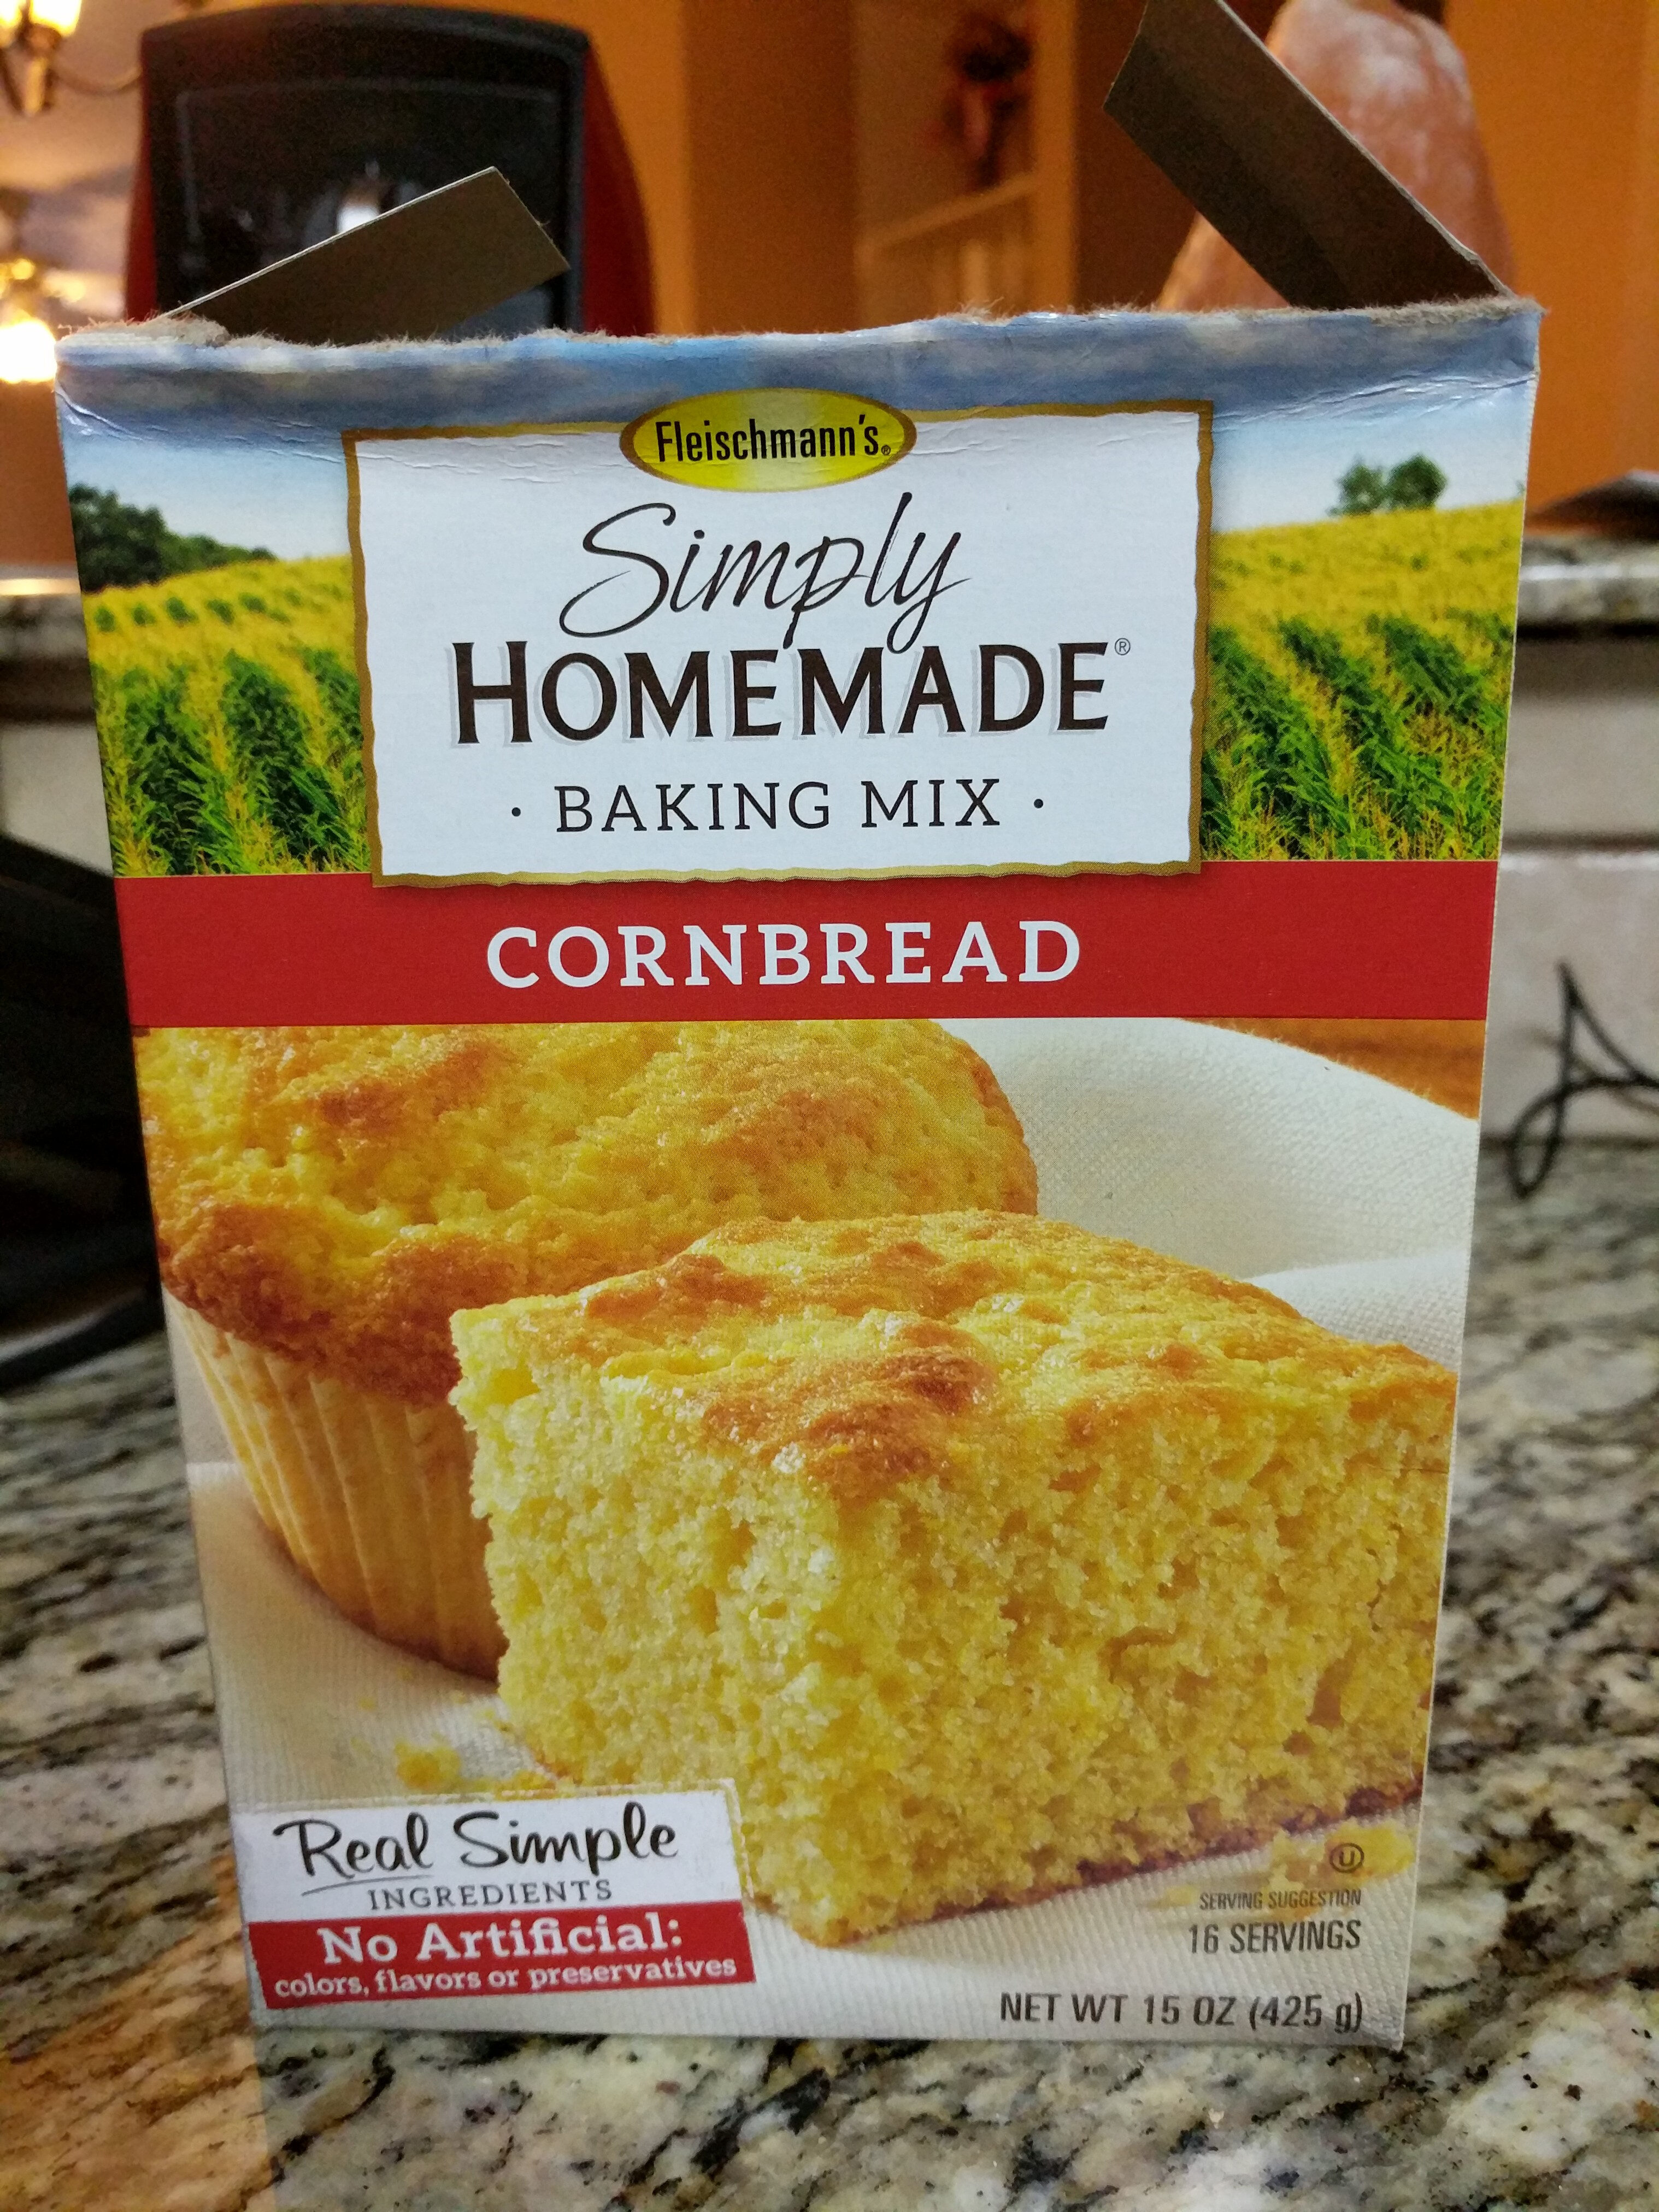 Simply homemade baking mix cornbread - Product